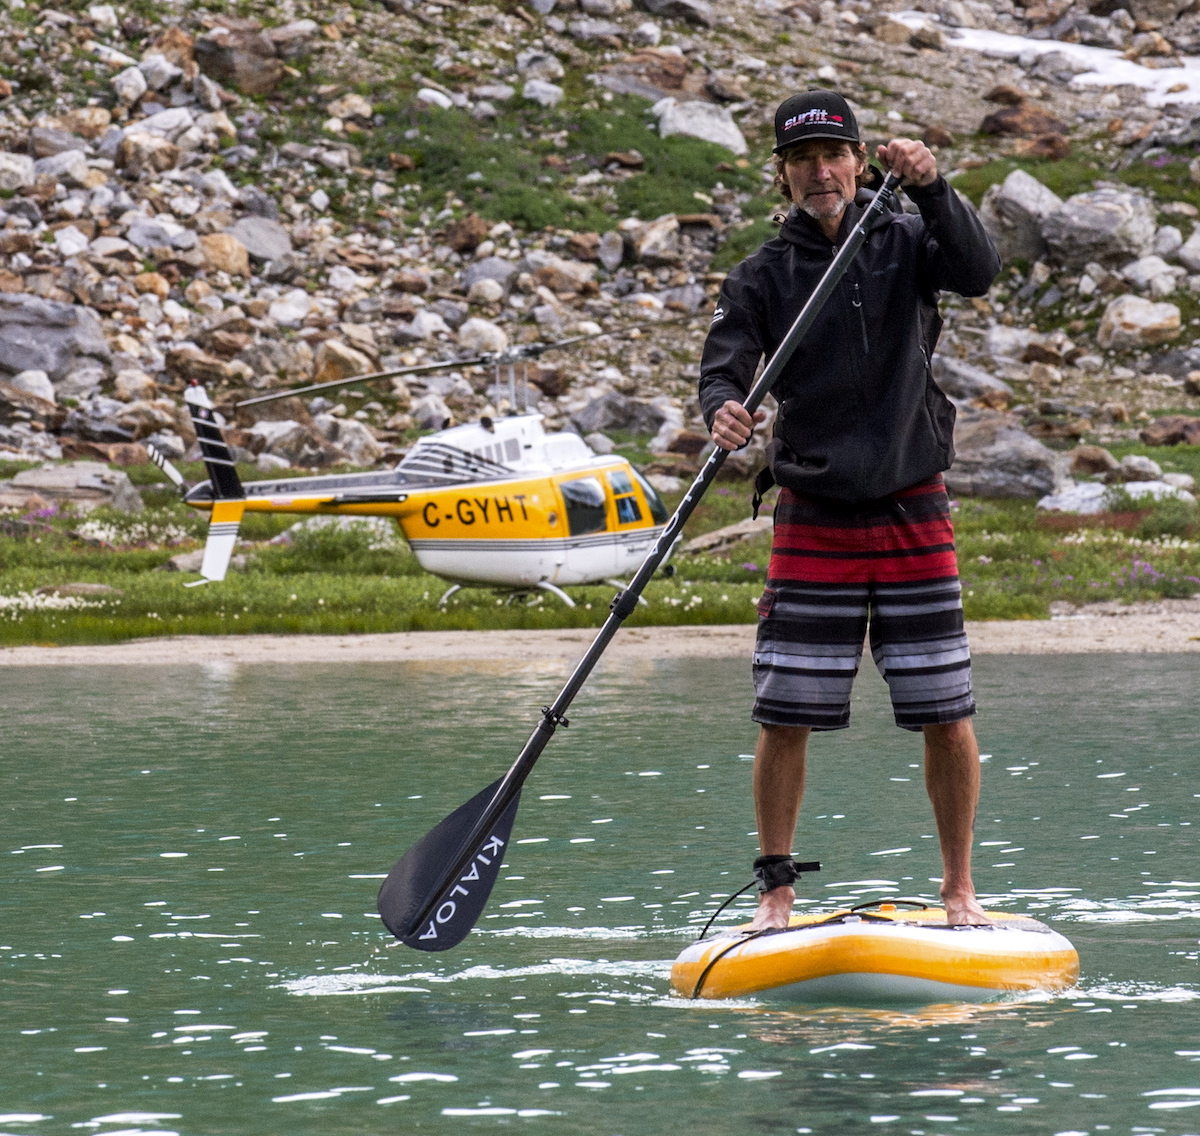 bodie shandro heli sup tour 5